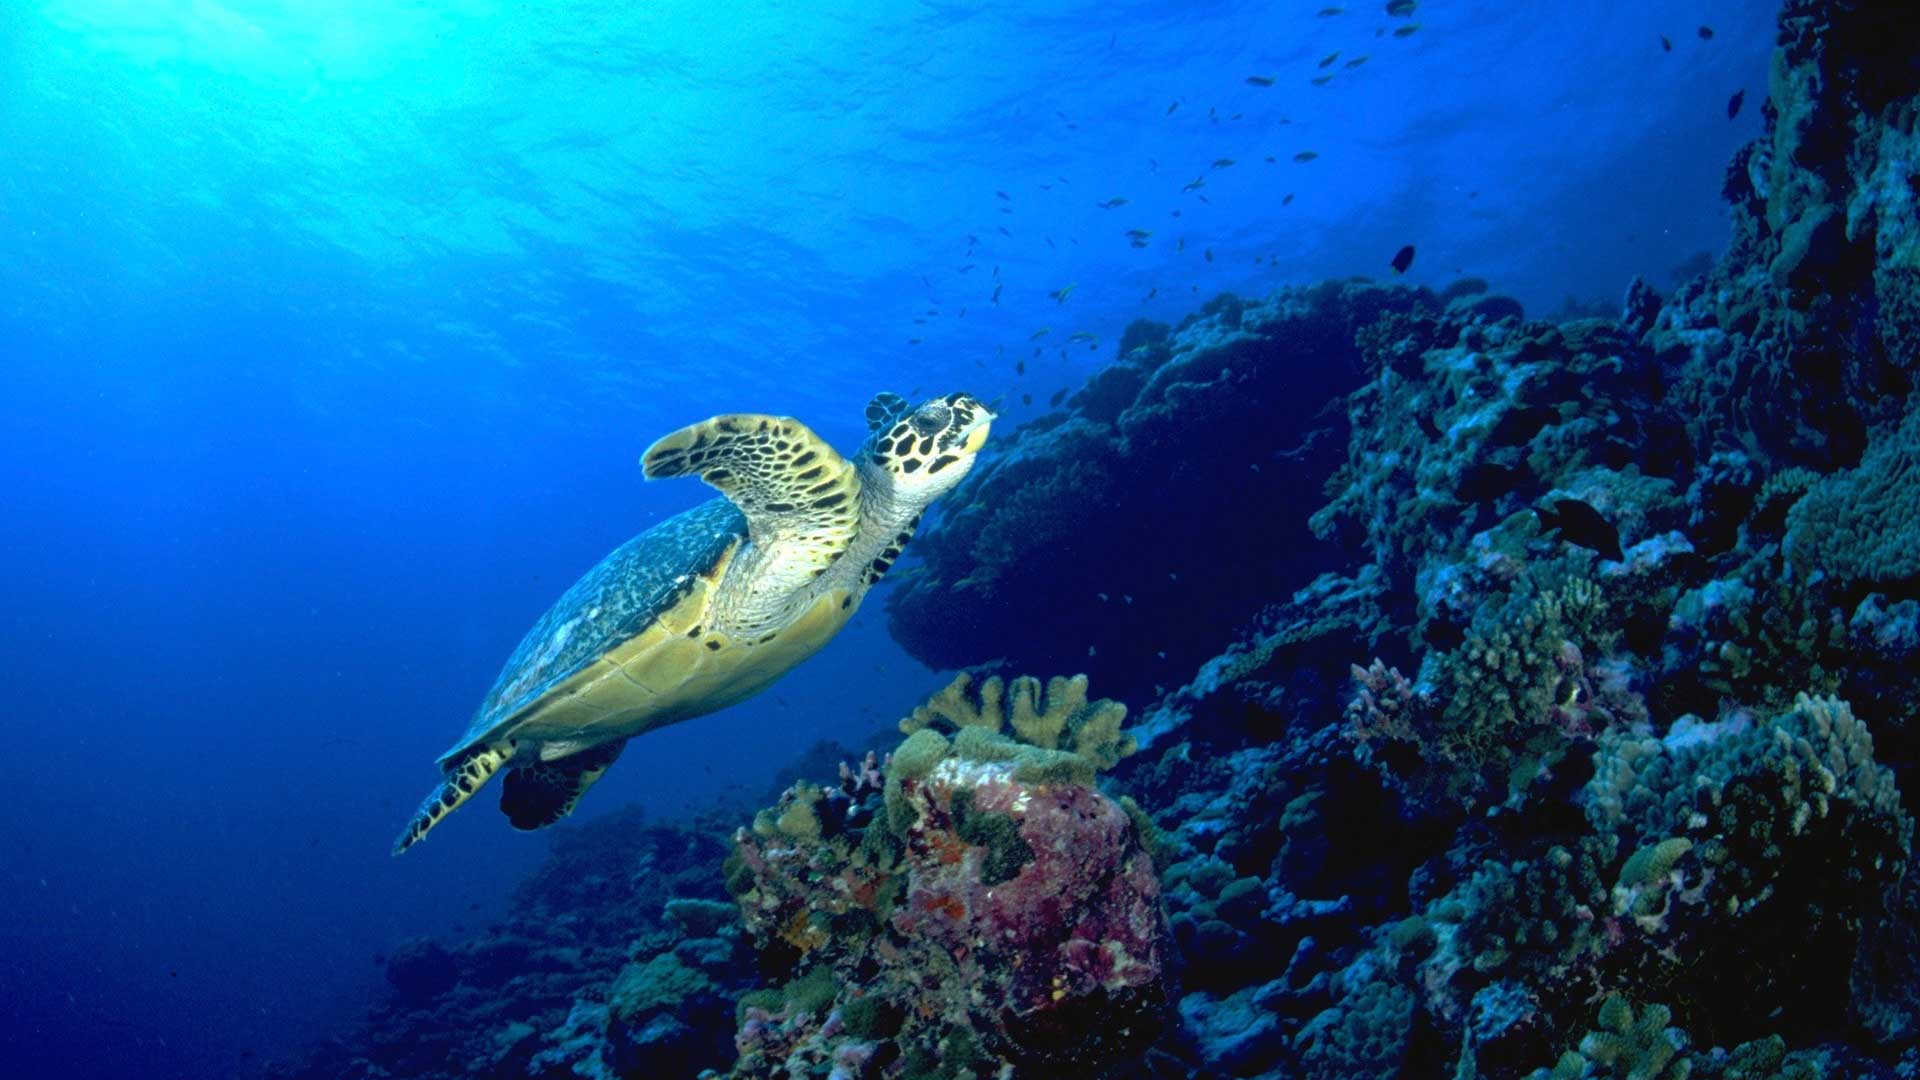 Hawksbill turtle Maldives Liveaboard diving